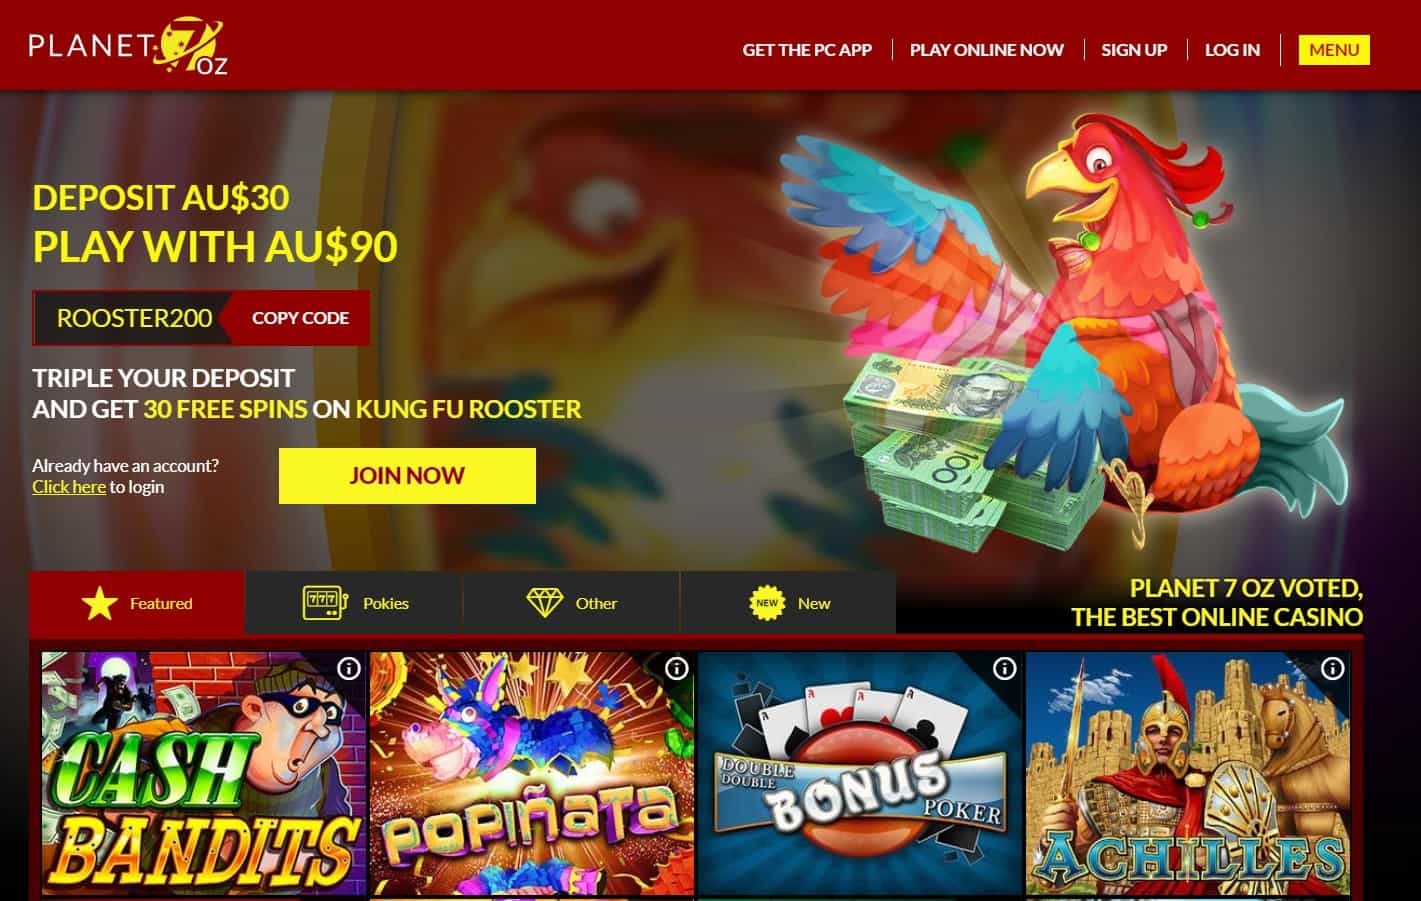 Planet 7 OZ casino homepage